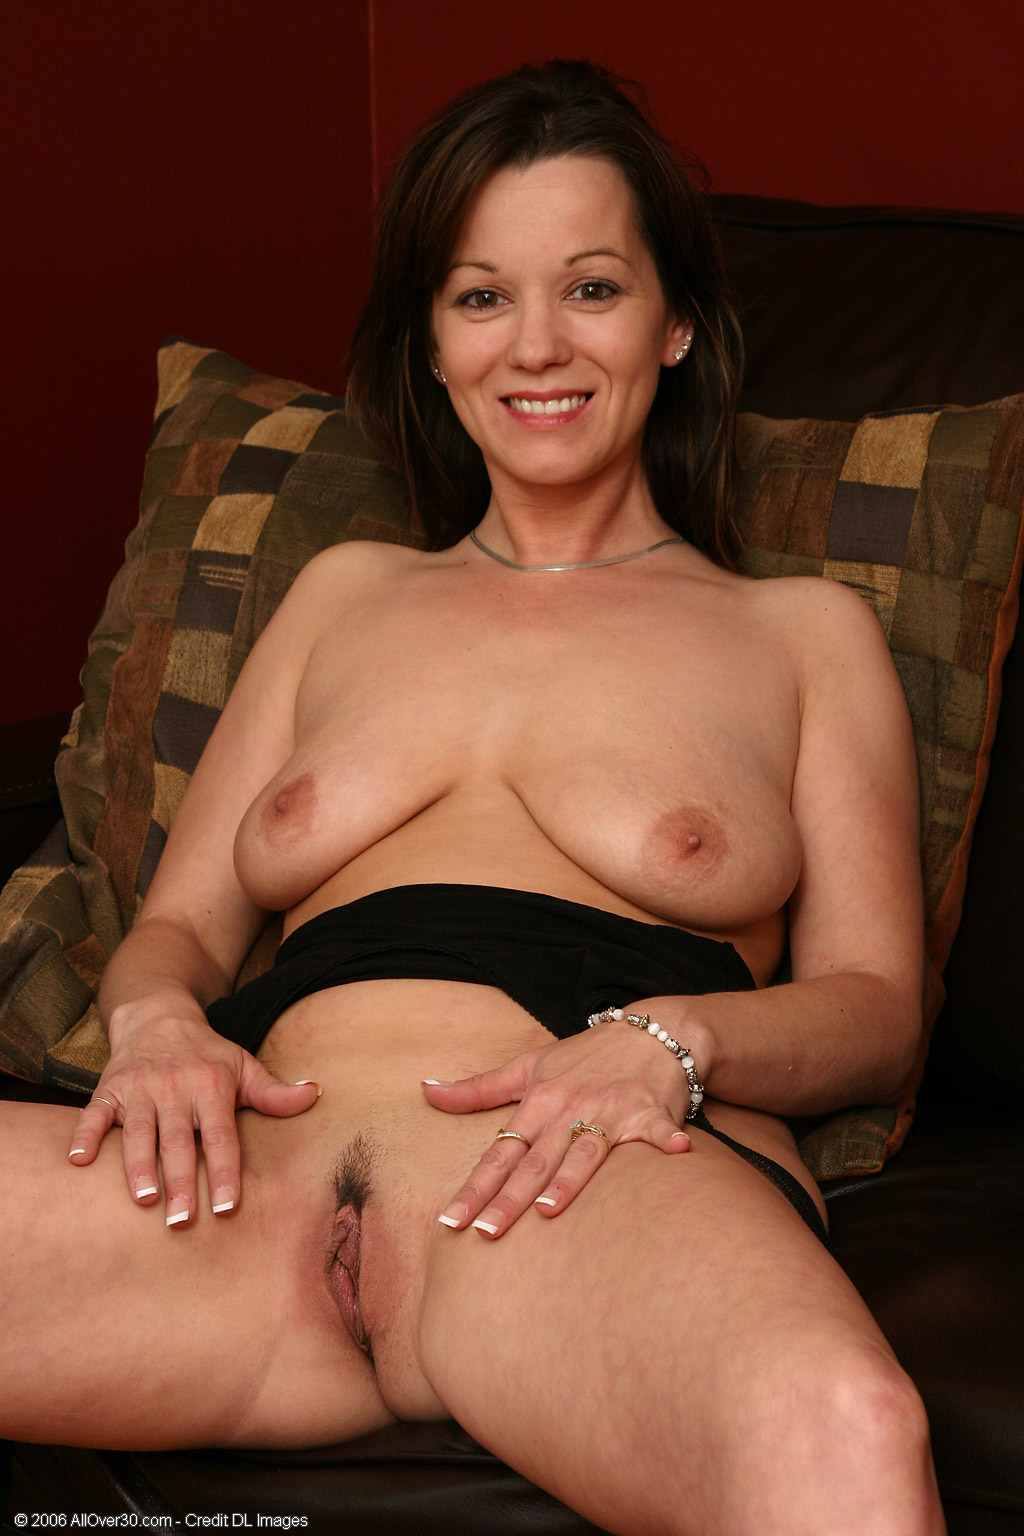 all over 30 'free' - browse our mature model pics & movies!